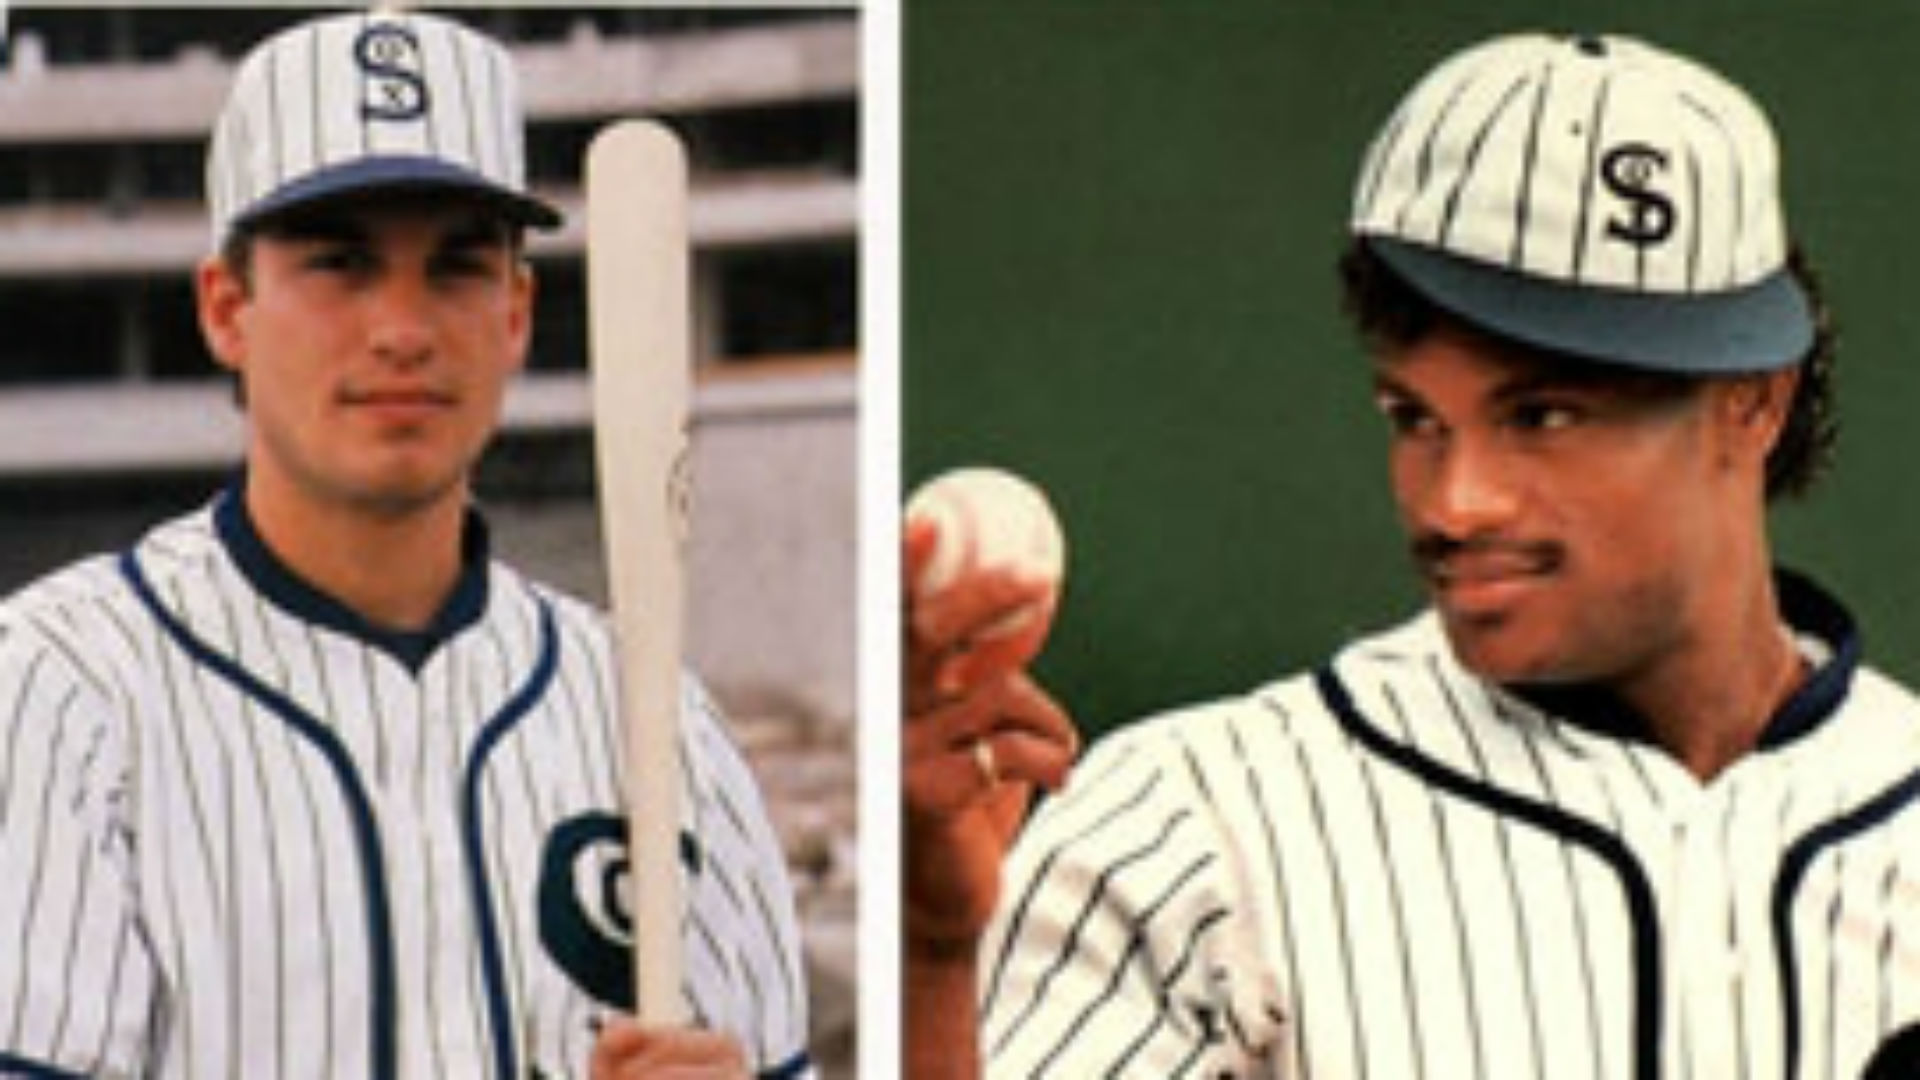 reputable site 367c8 04852 25 years ago, White Sox rolled out MLB's first throwback ...